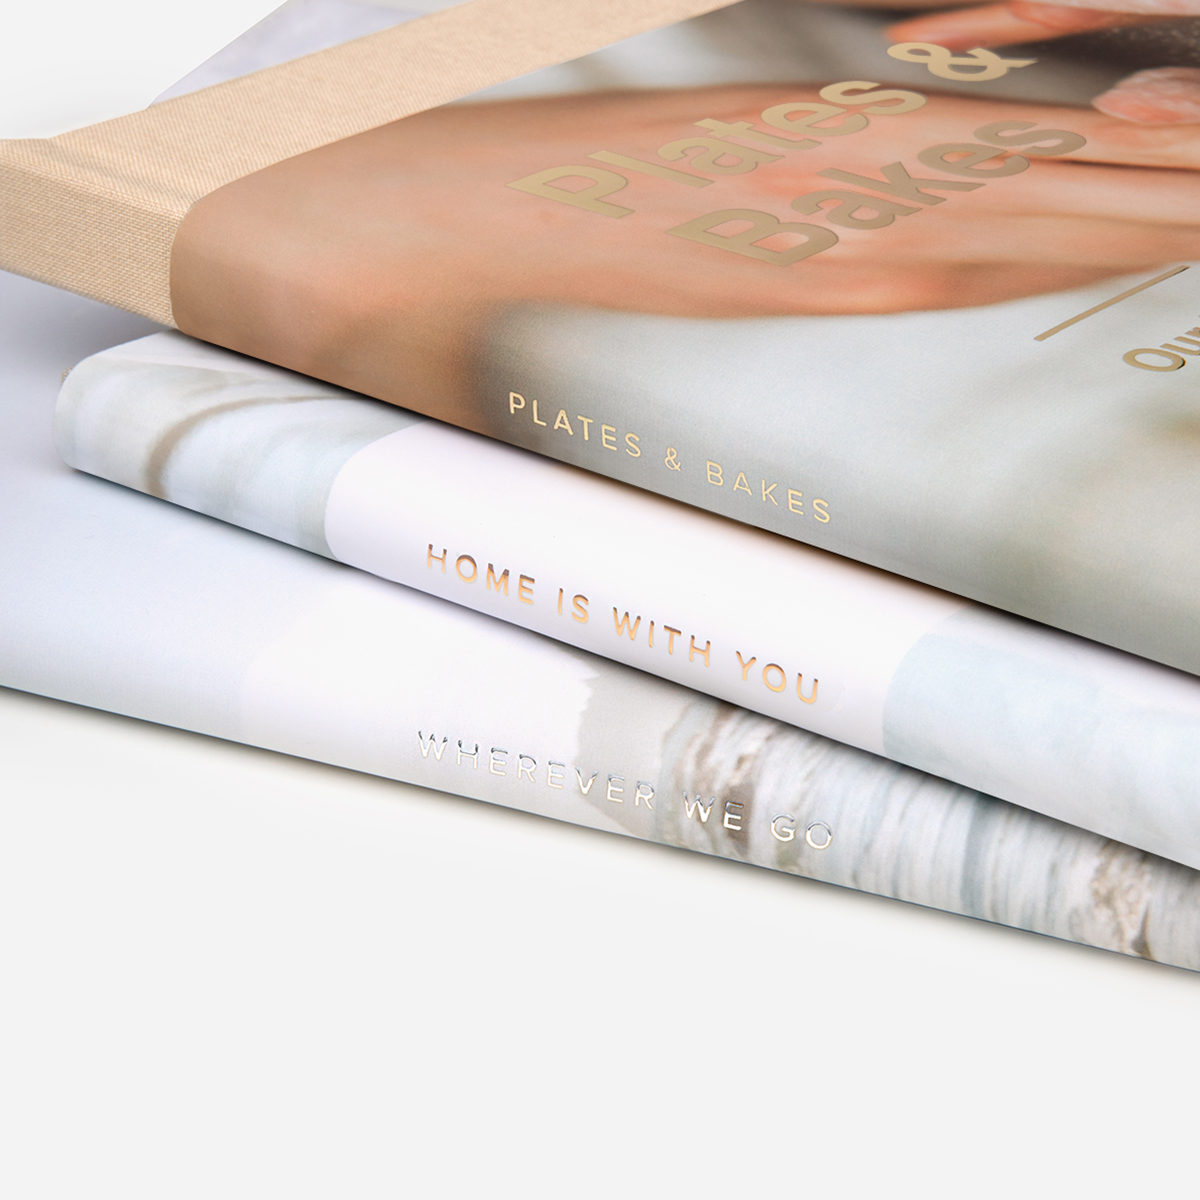 Digital foil lettering on the spines of the dust jackets of three stacked Artifact Uprising Hardcover Photo Books